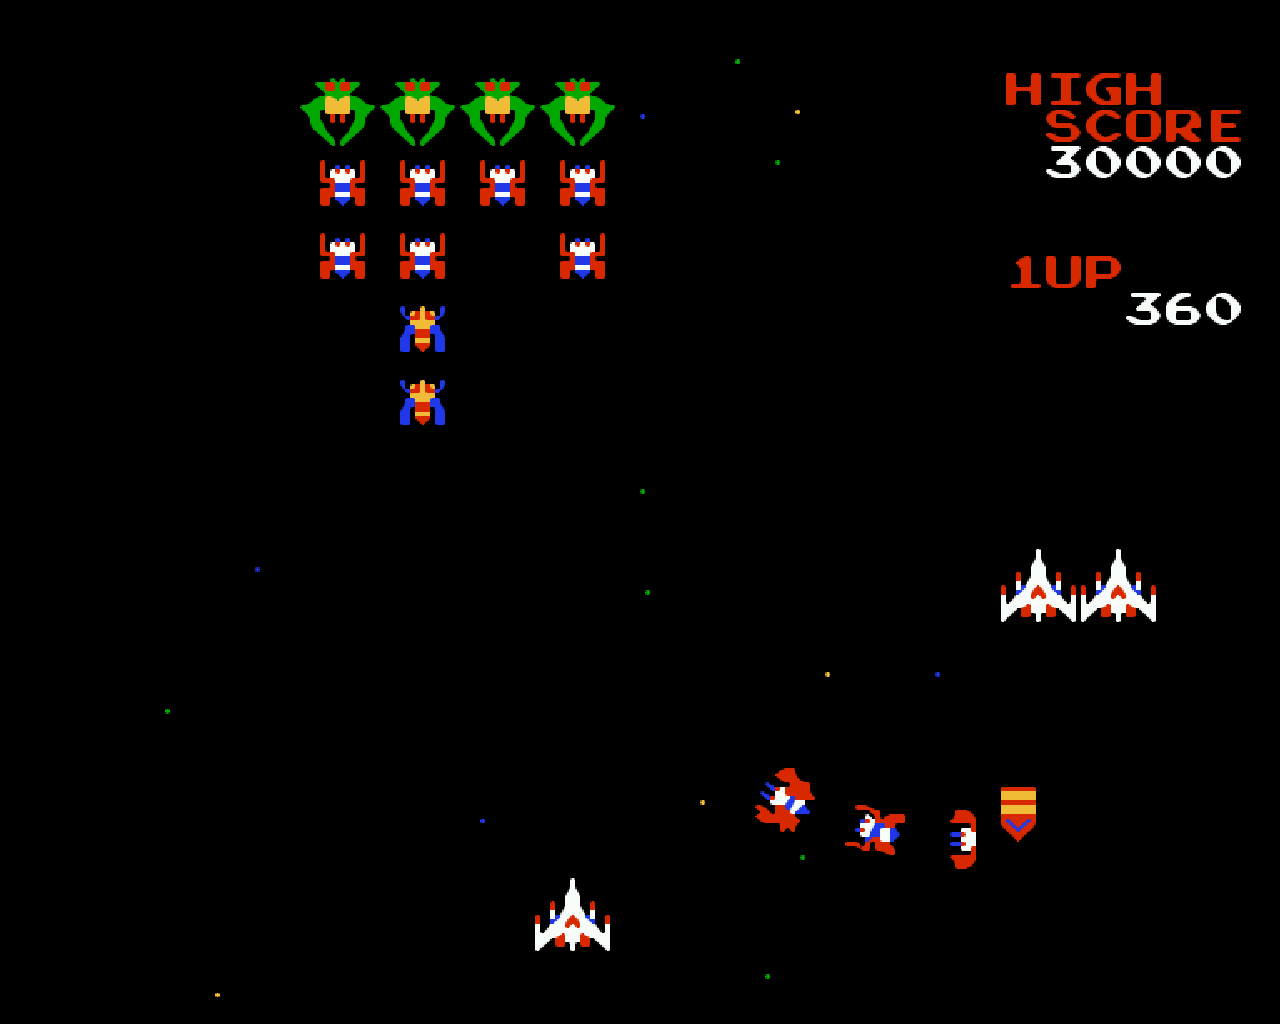 Galaga HD Wallpapers and Background Images   stmednet 1280x1024